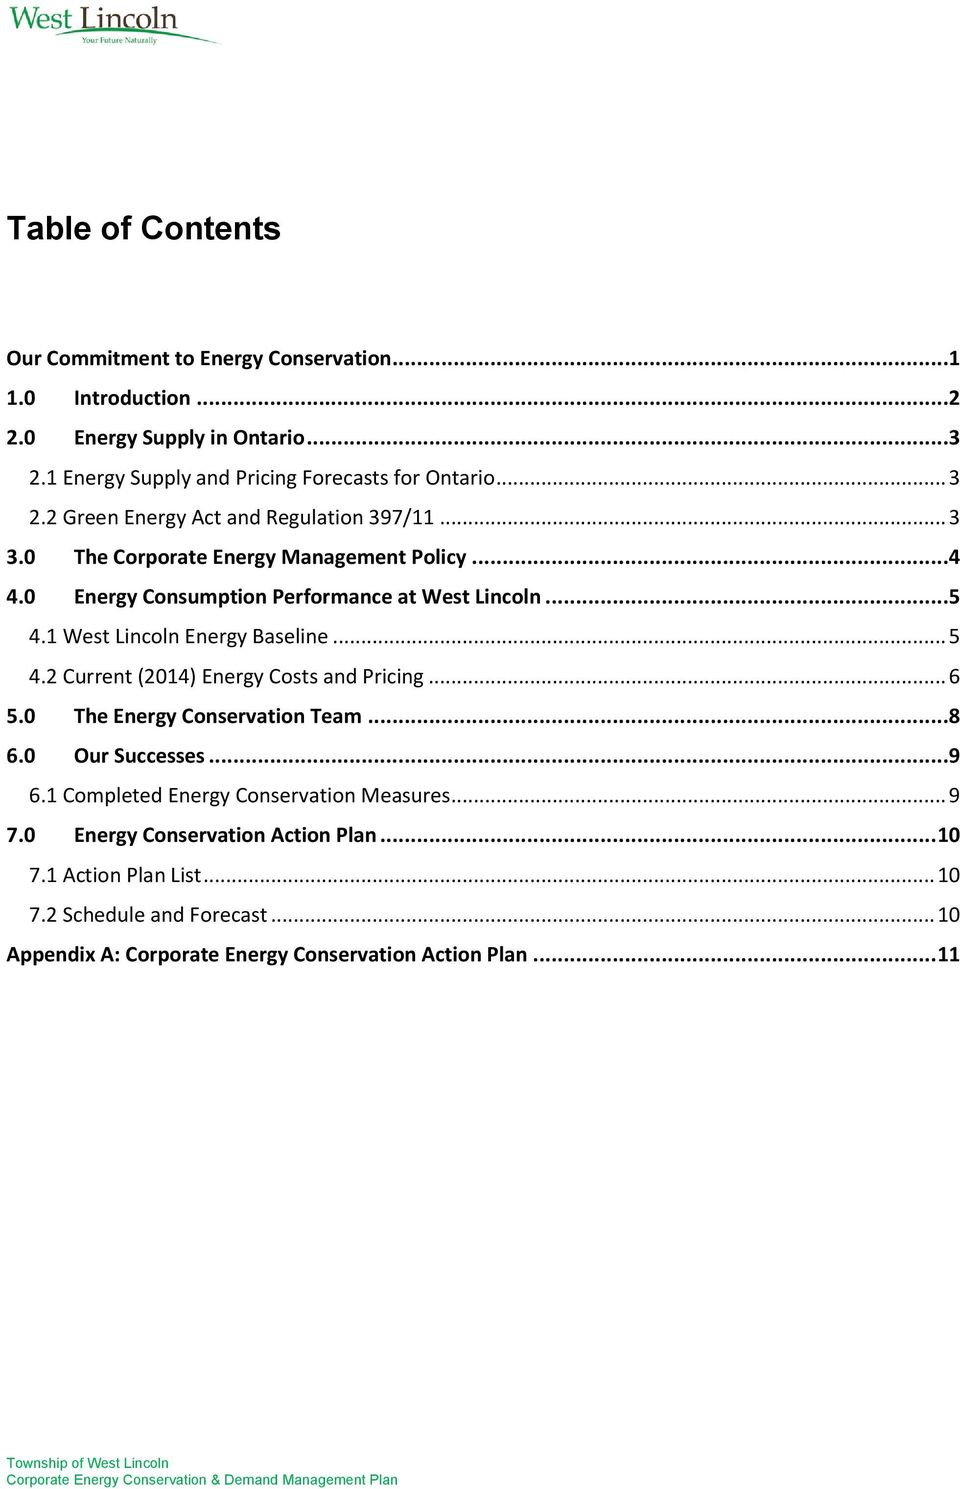 .. 5 4.2 Current (2014) Energy Costs and Pricing... 6 5.0 The Energy Conservation Team...8 6.0 Our Successes...9 6.1 Completed Energy Conservation Measures... 9 7.